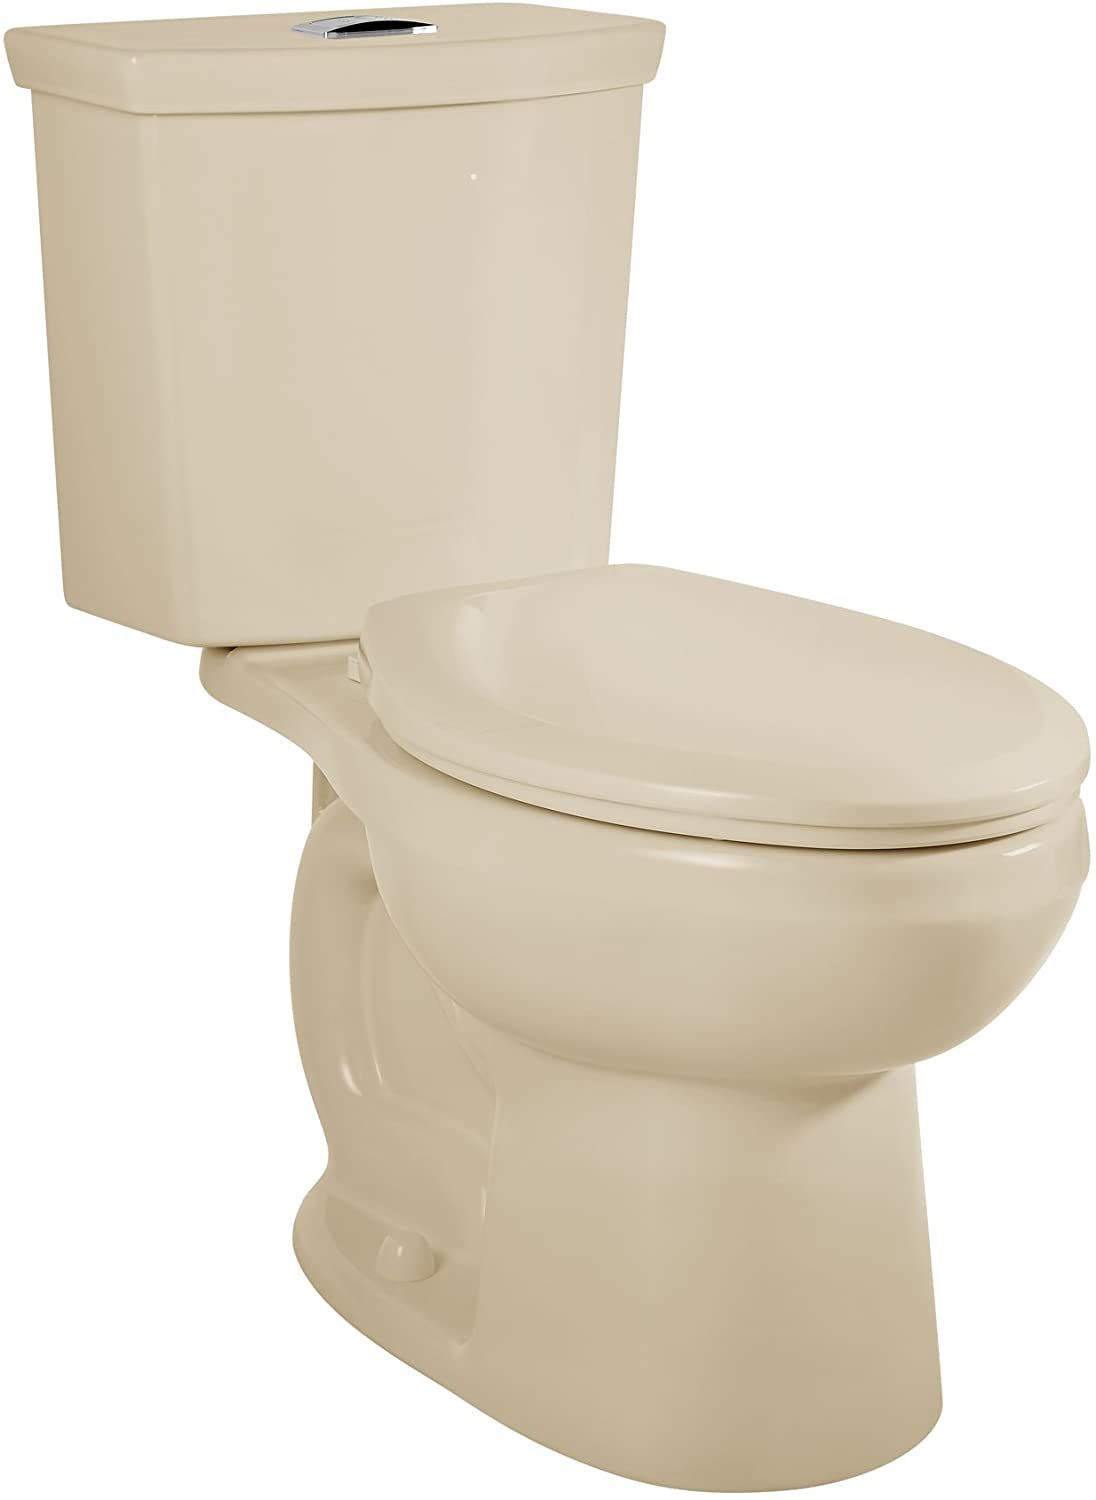 American Standard 2887518.021 H2Option Siphonic Dual Flush Normal Height Elongated Toilet with Liner, Bone, 2-Piece